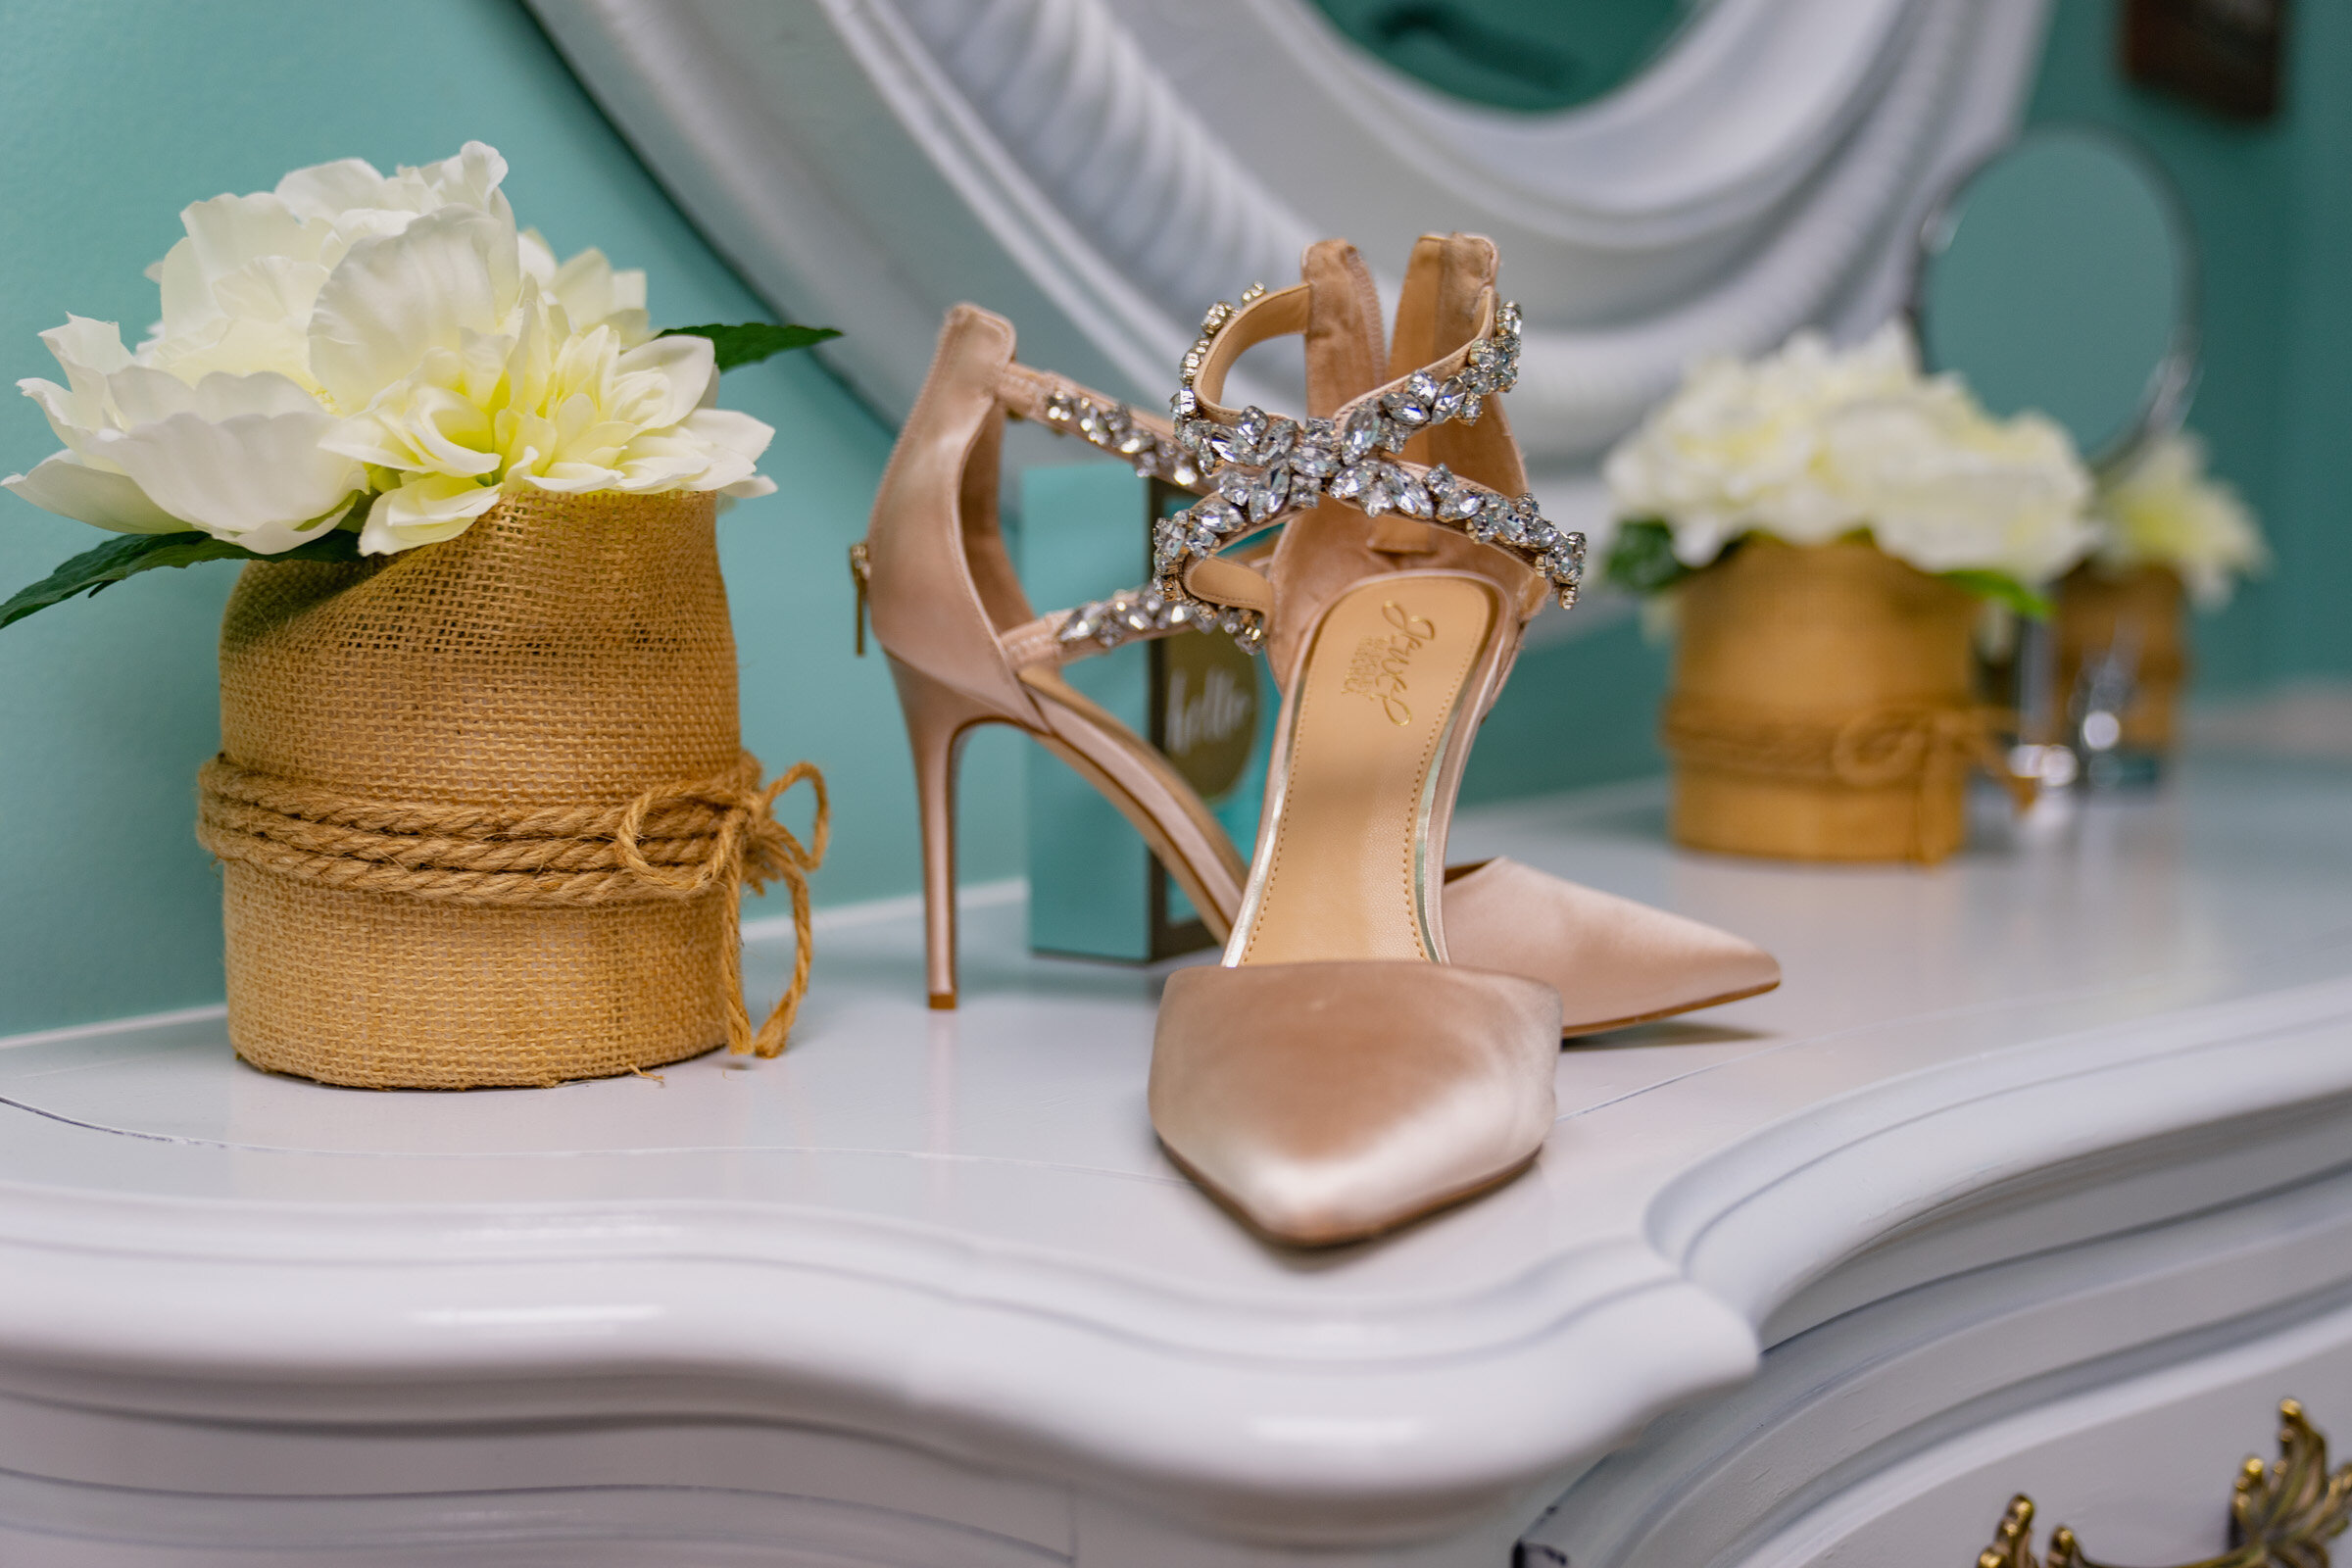 These shoes & wedding flowers are so perfectly minimalist and beautiful